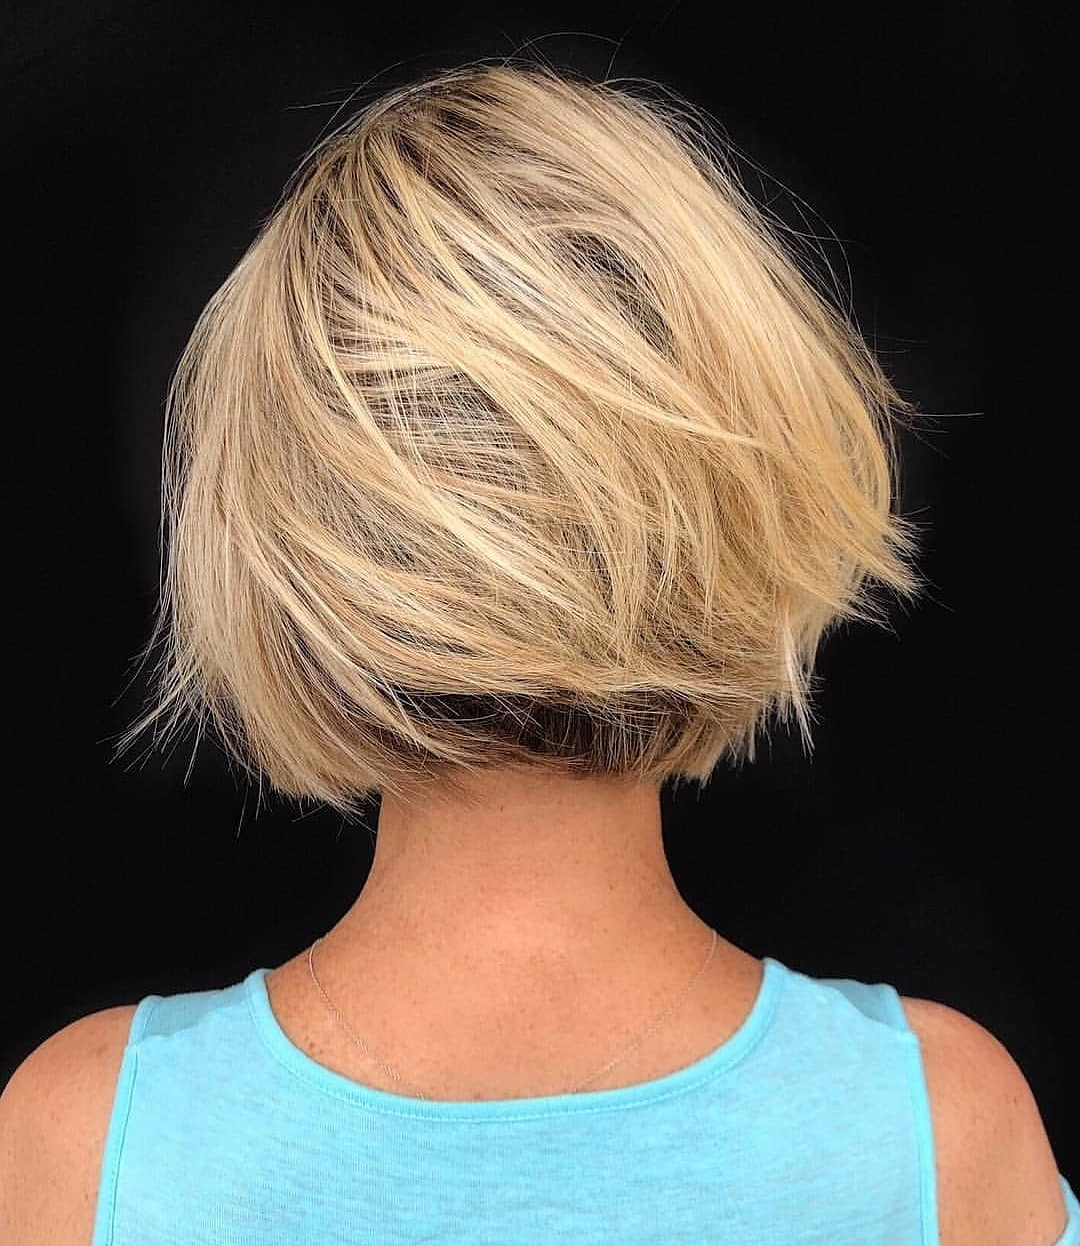 Top 10 Low Maintenance Short Bob Cuts For Thick Hair, Short Inside Easy Maintenance Short Hairstyles (View 24 of 25)